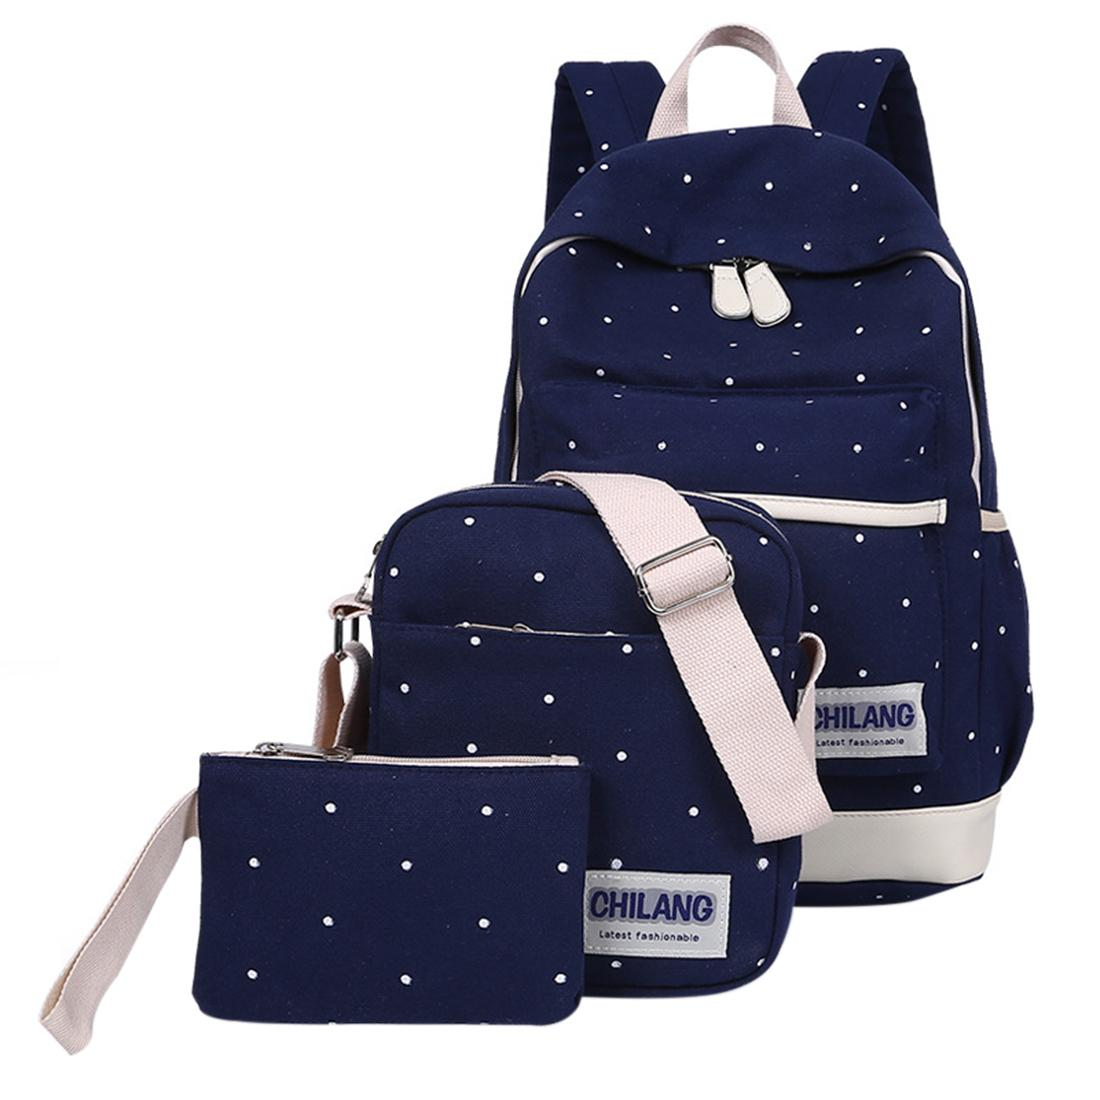 78a358ea42 3Pcs Korean Style Polka Dots Decoration Canvas Backpack Crossbody Bag  Clutch Bag Set - Dark Blue